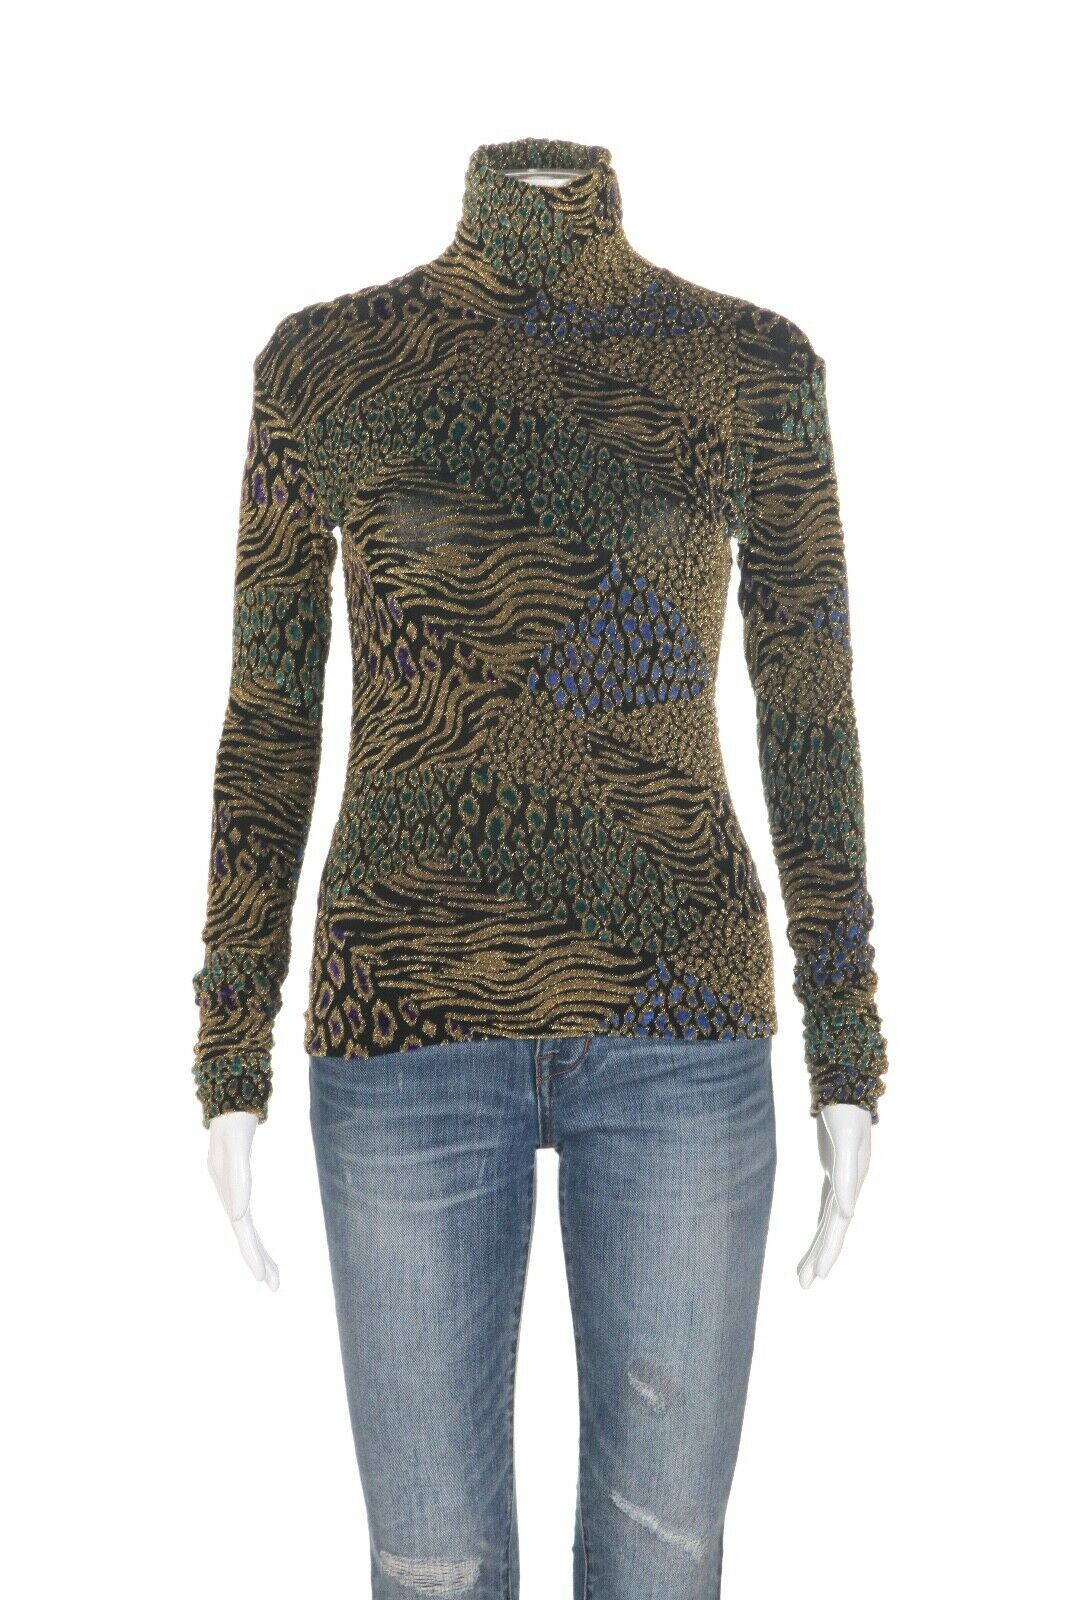 CAROLINE CONSTAS Metallic Long Sleeve Top Size M